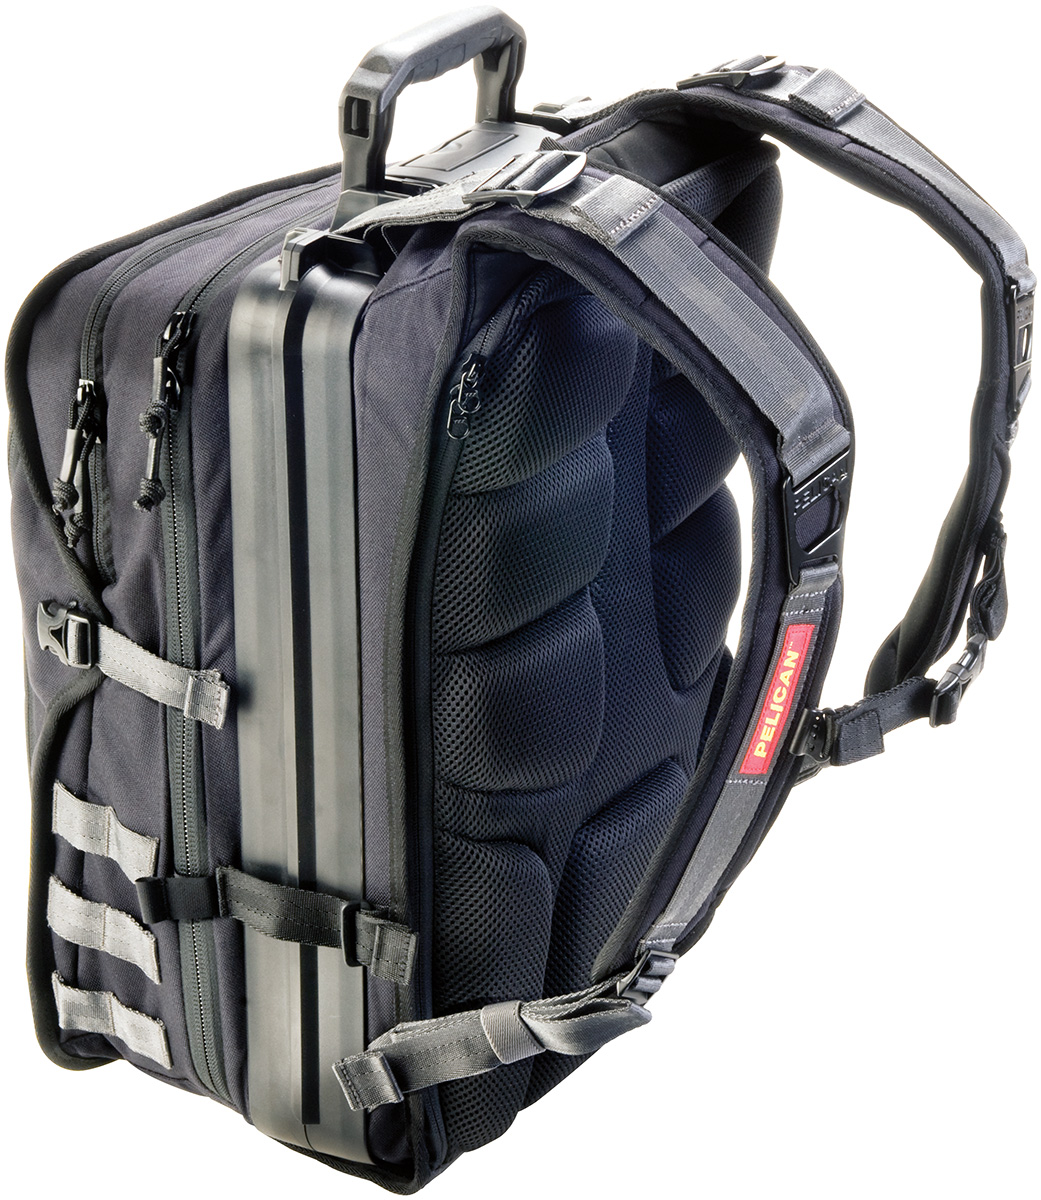 U100 Backpack - Urban | Urban Elite | Pelican Consumer